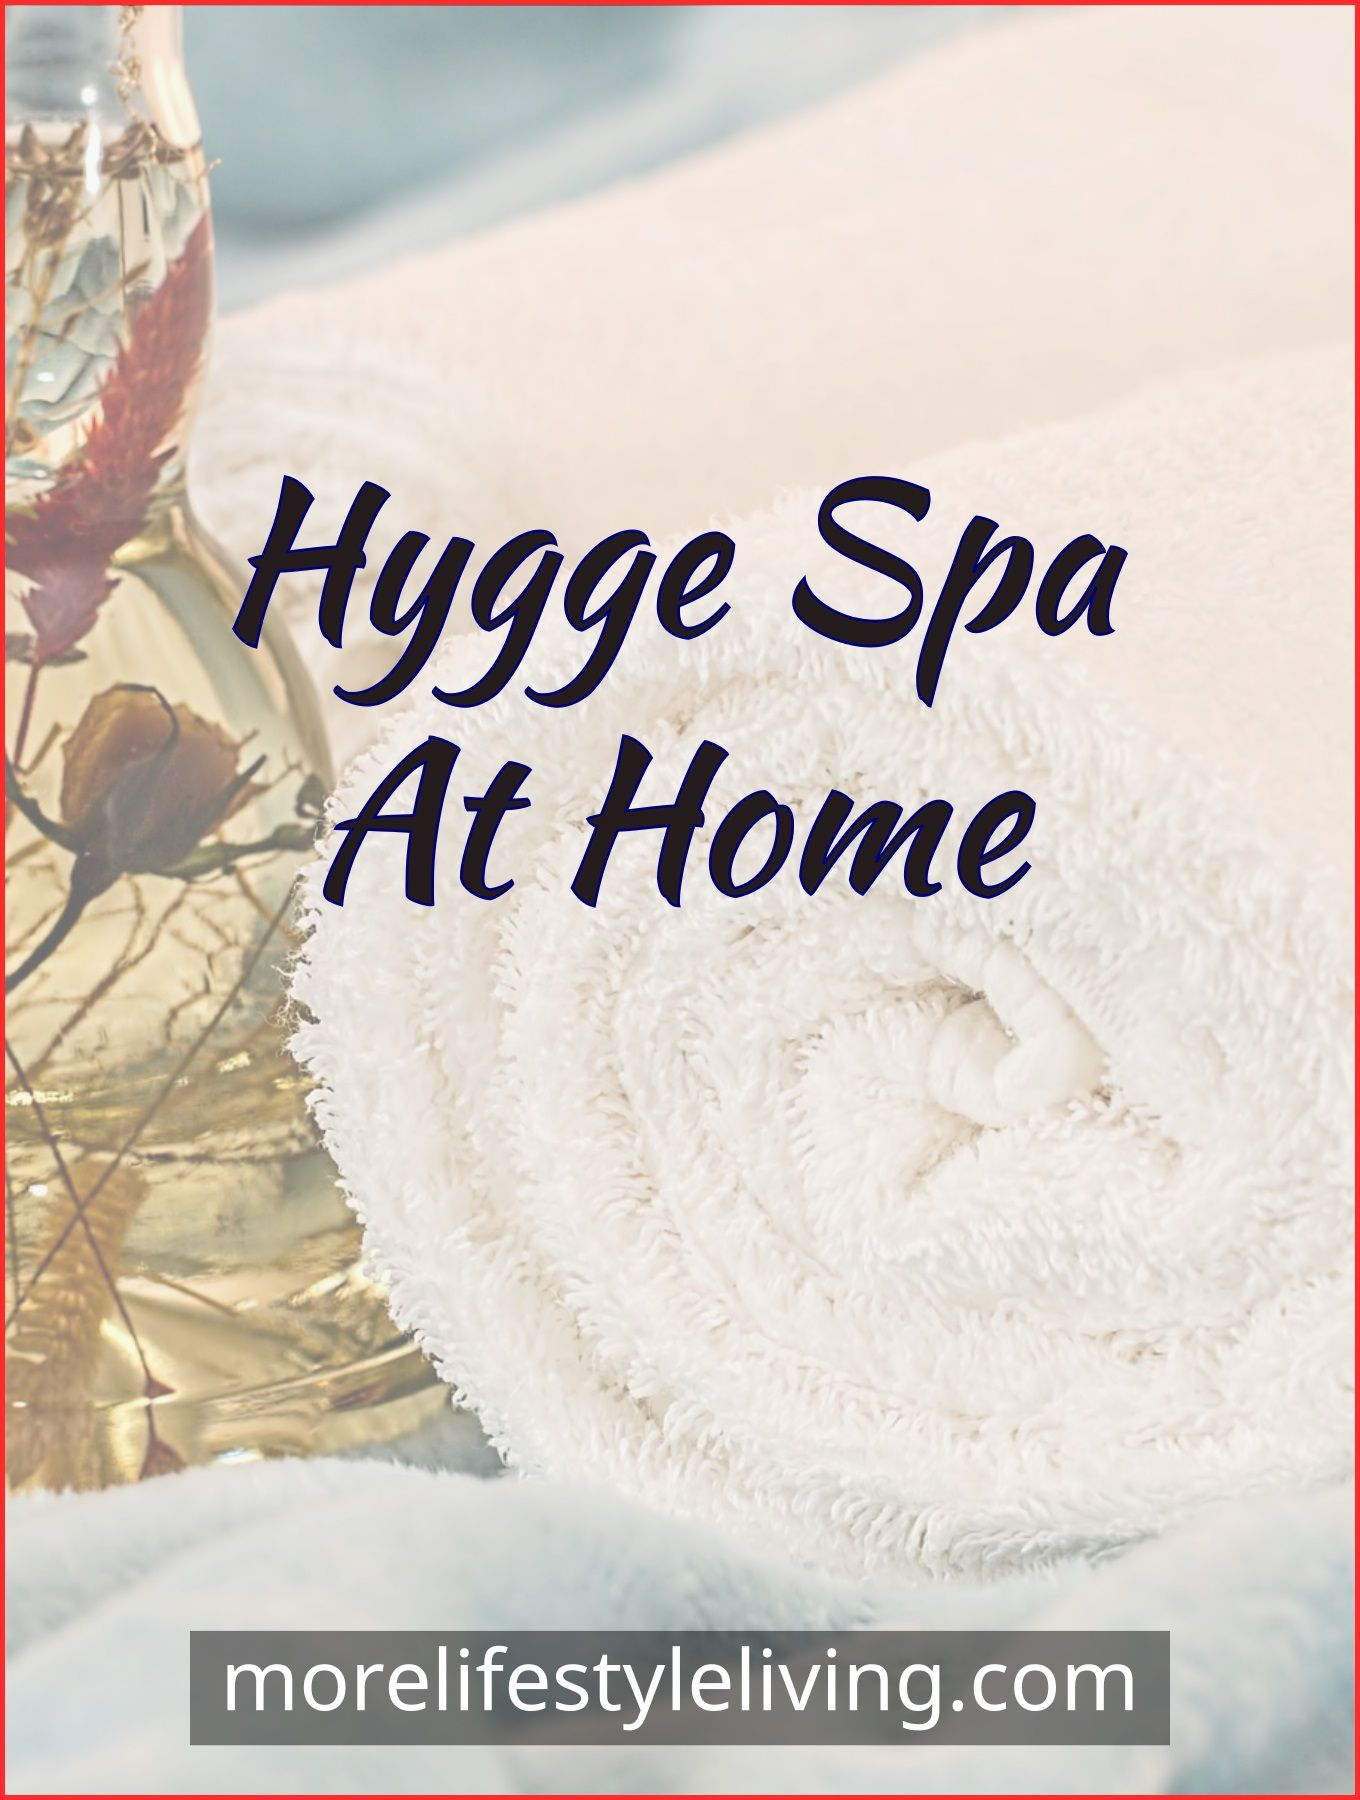 Create a hygge spa at home and get cozy! #morelifestyleliving